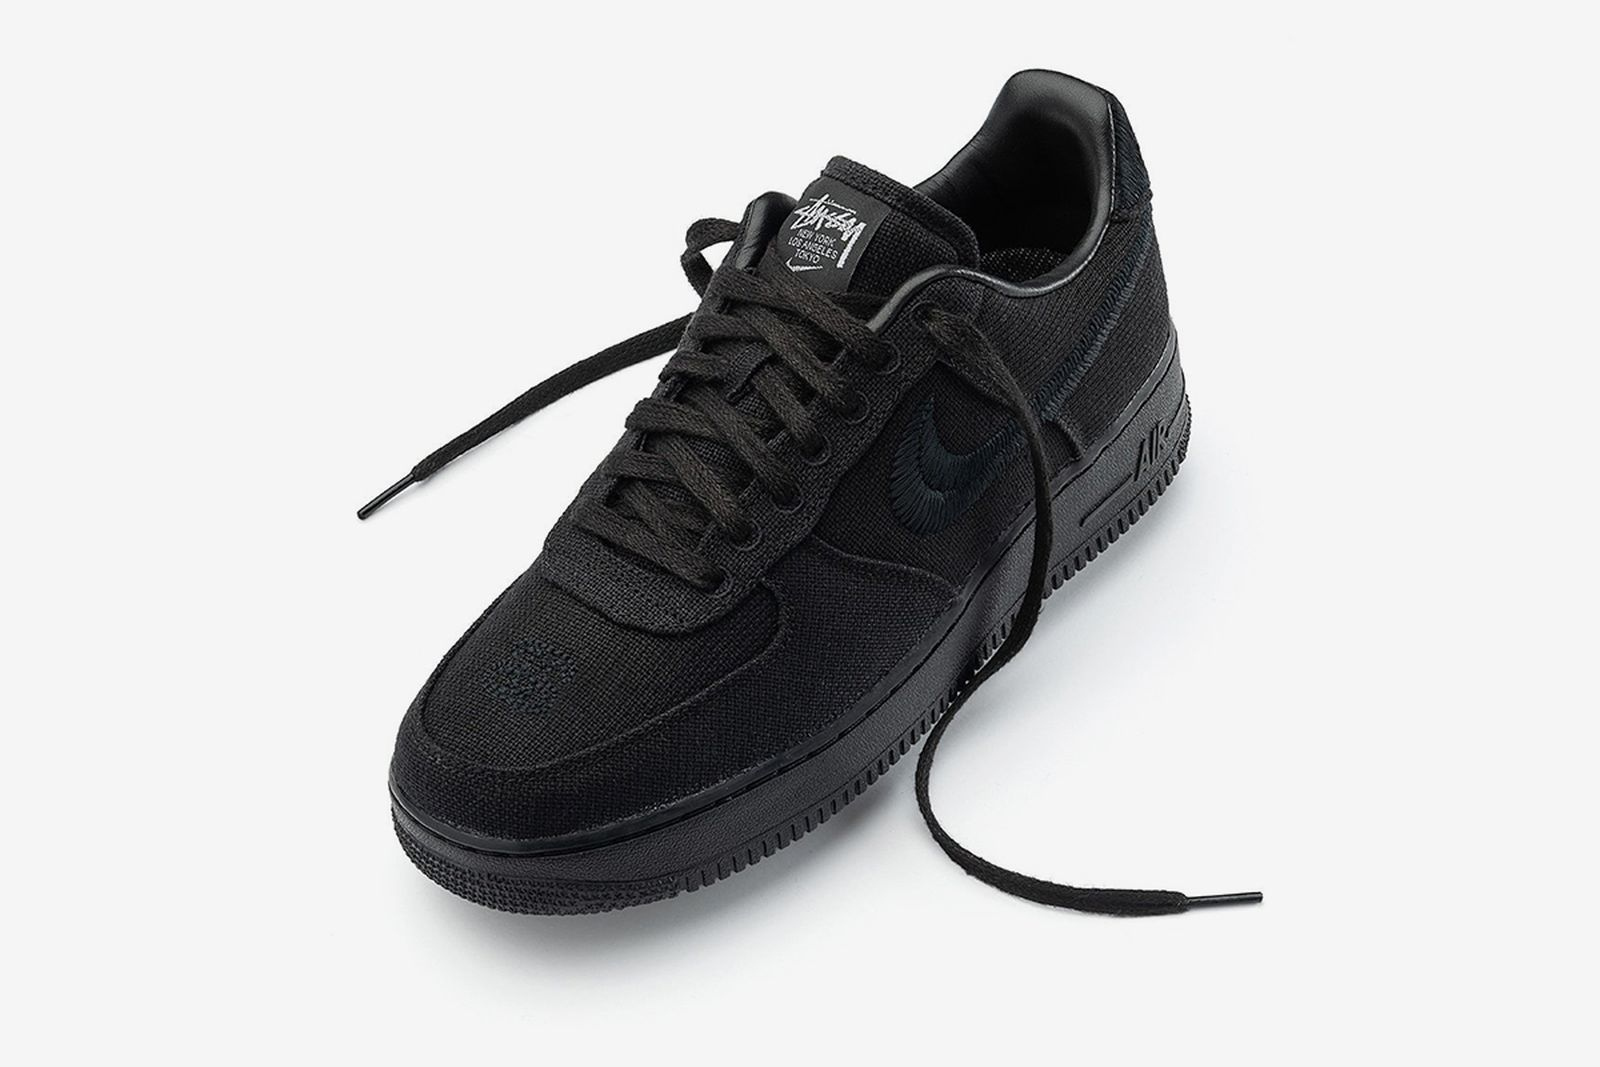 stussy-nike-air-force-1-release-date-price-01